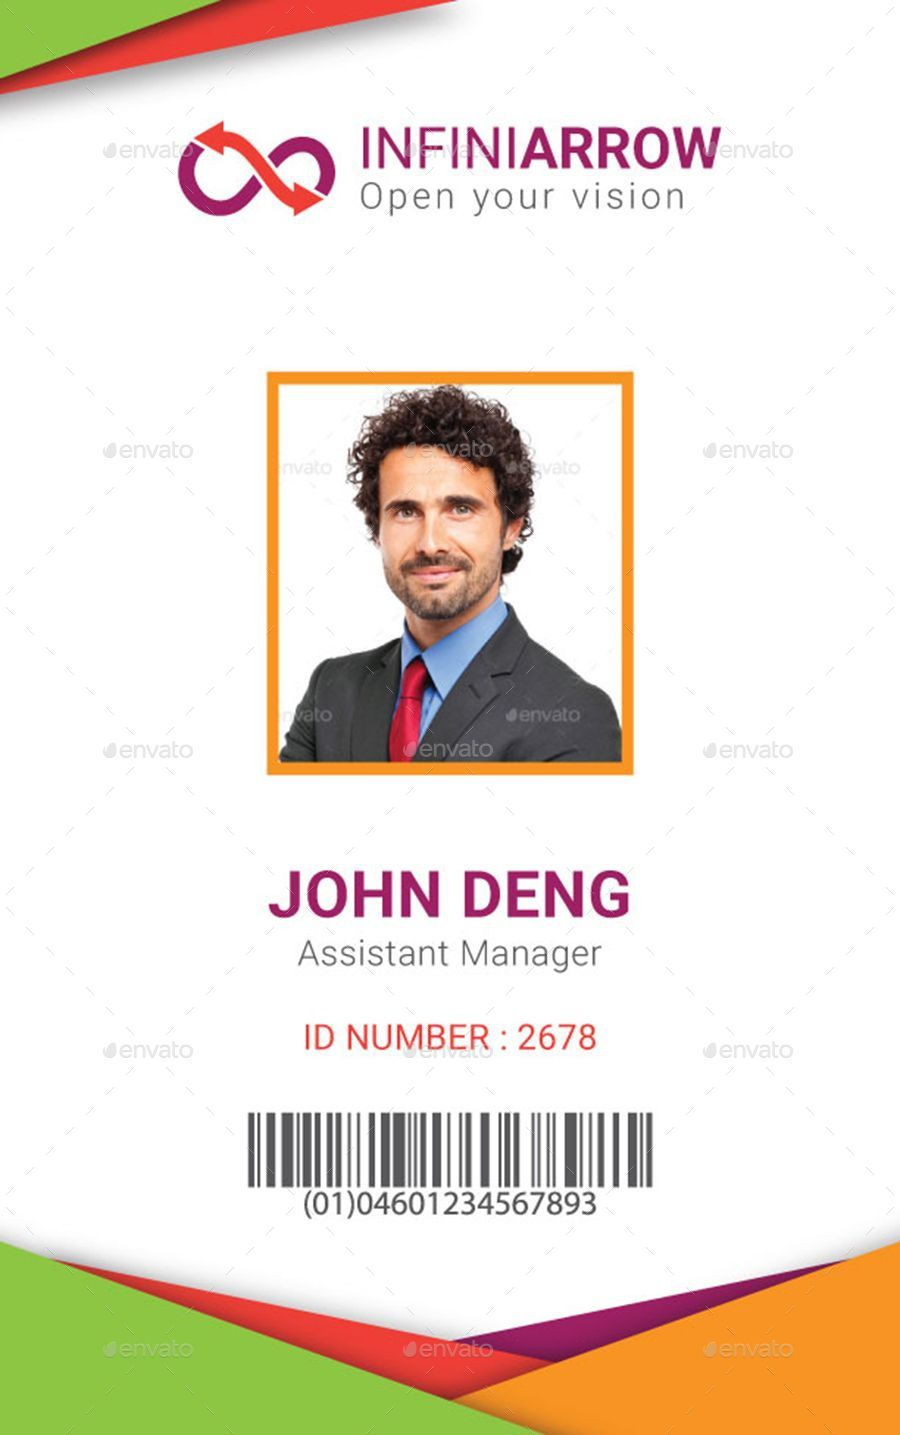 002 Stupendou Id Card Template Free Download Example  Design Photoshop Identity Student WordFull